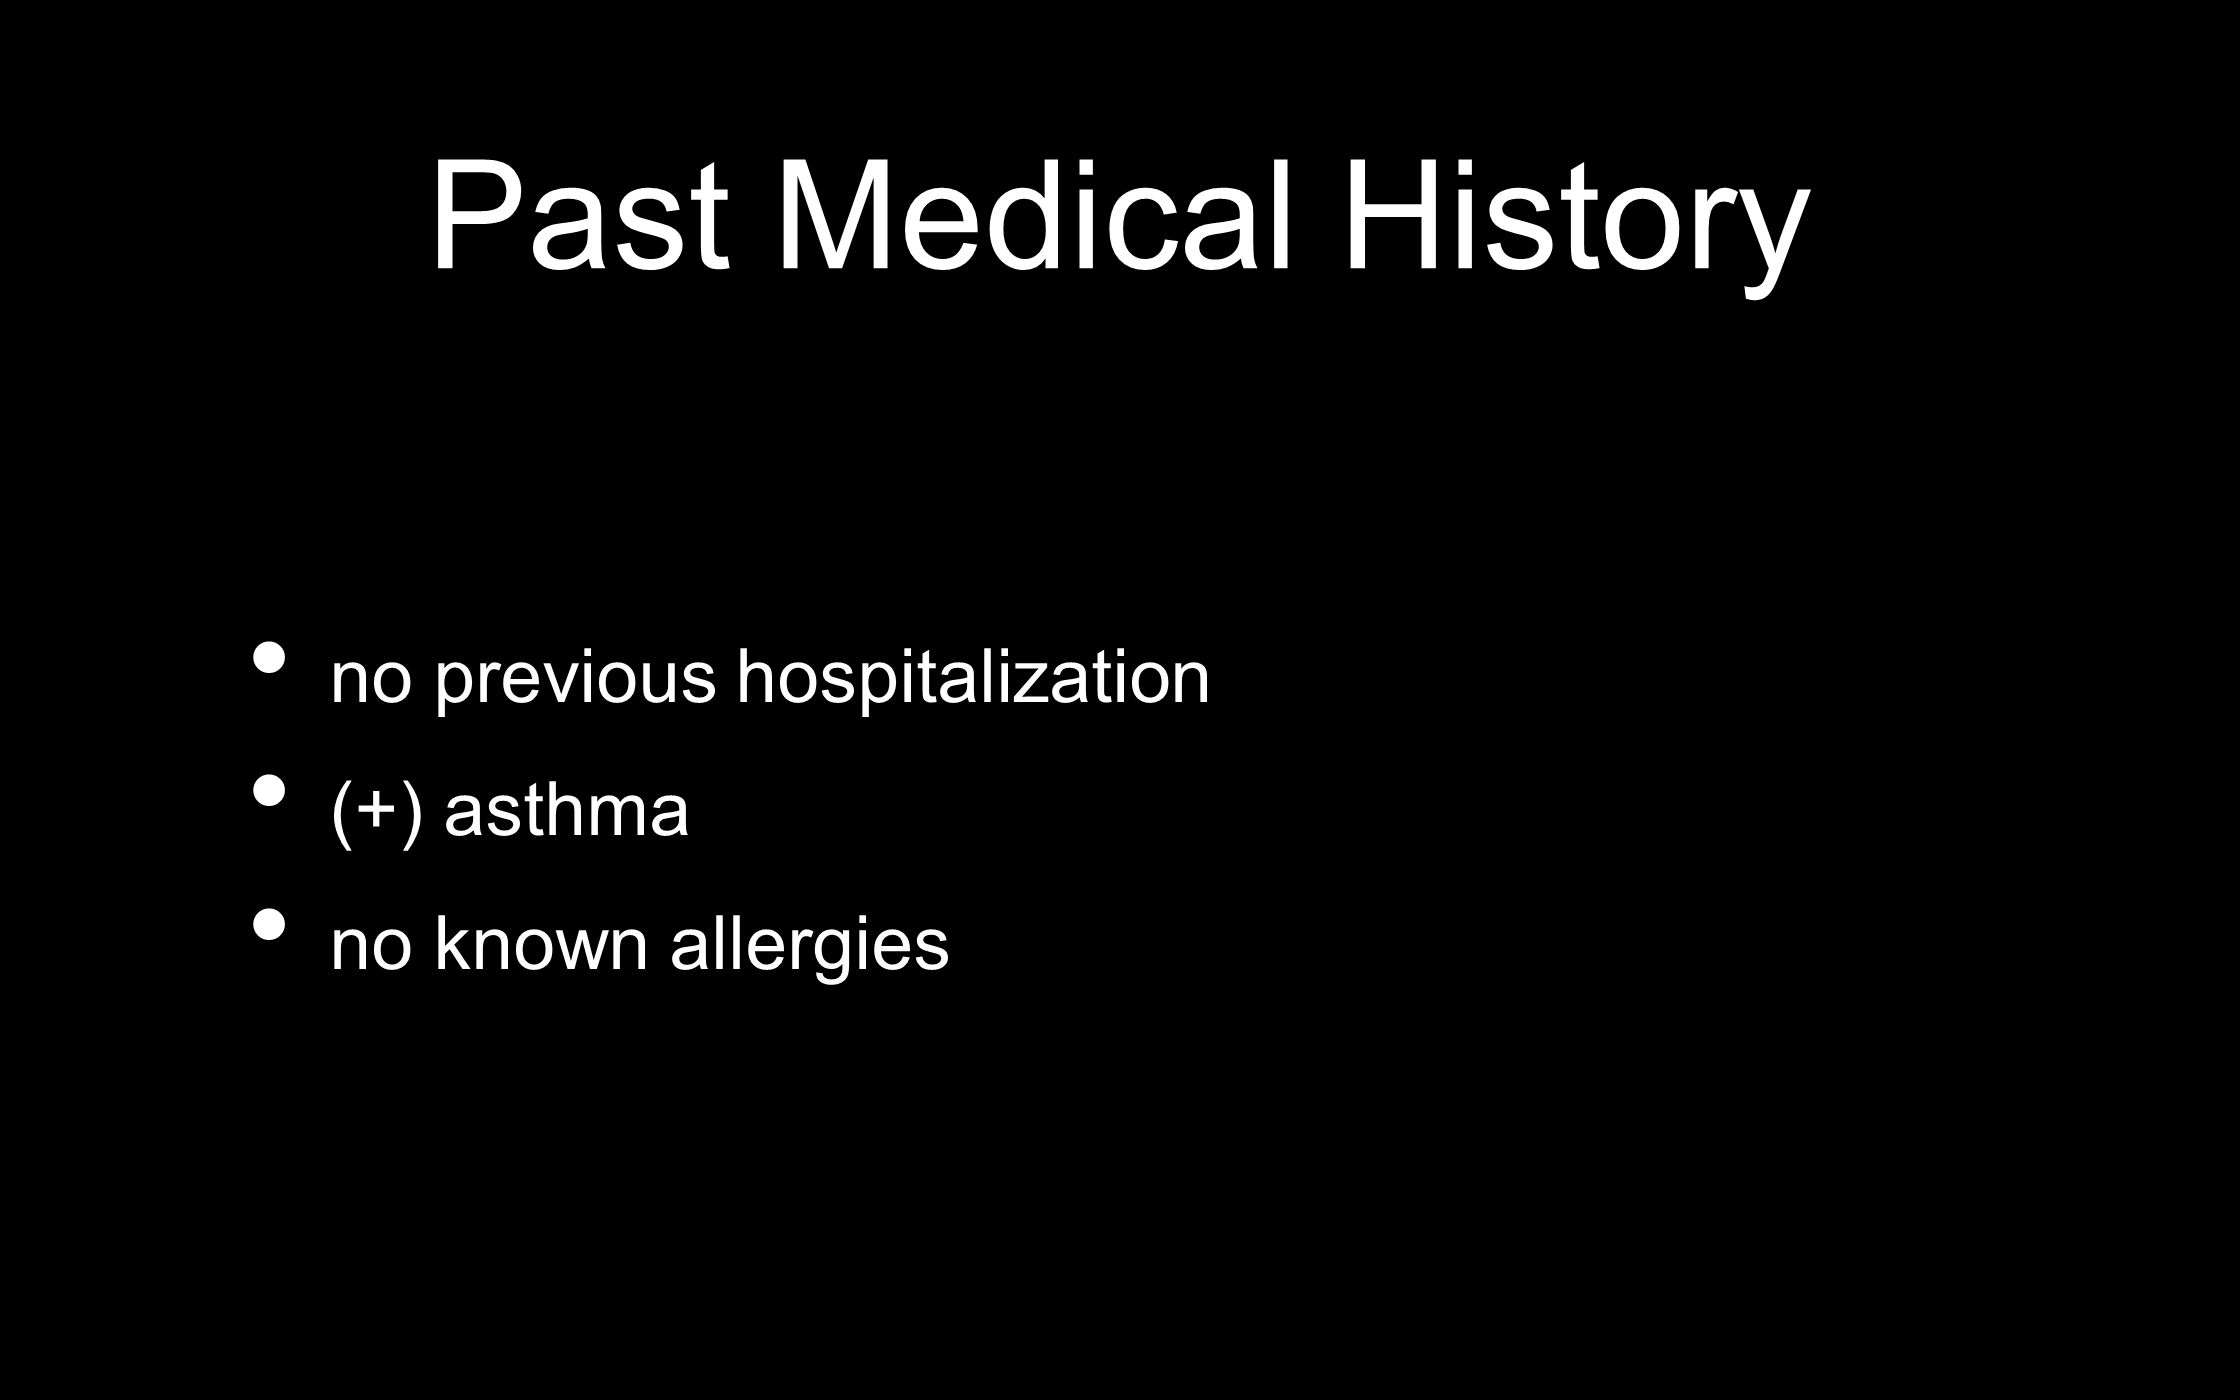 Past Medical History no previous hospitalization (+) asthma